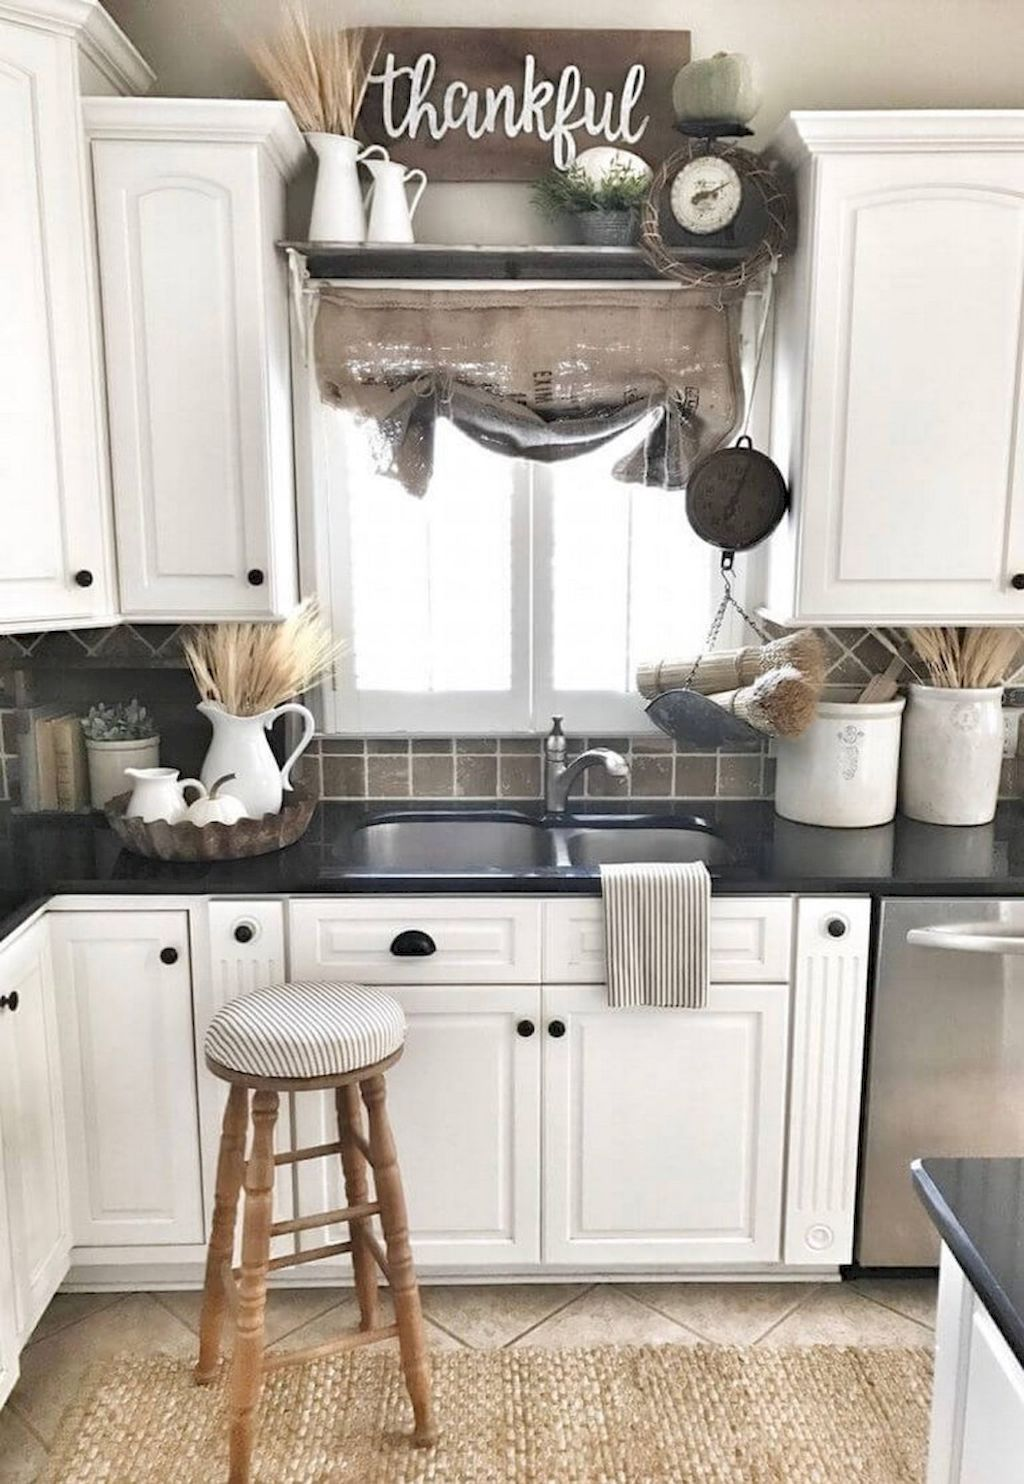 Nice 40 stunning farmhouse kitchen ideas on a budget https roomadness com 2017 10 27 40 stunning farmhouse kitchen ideas budget